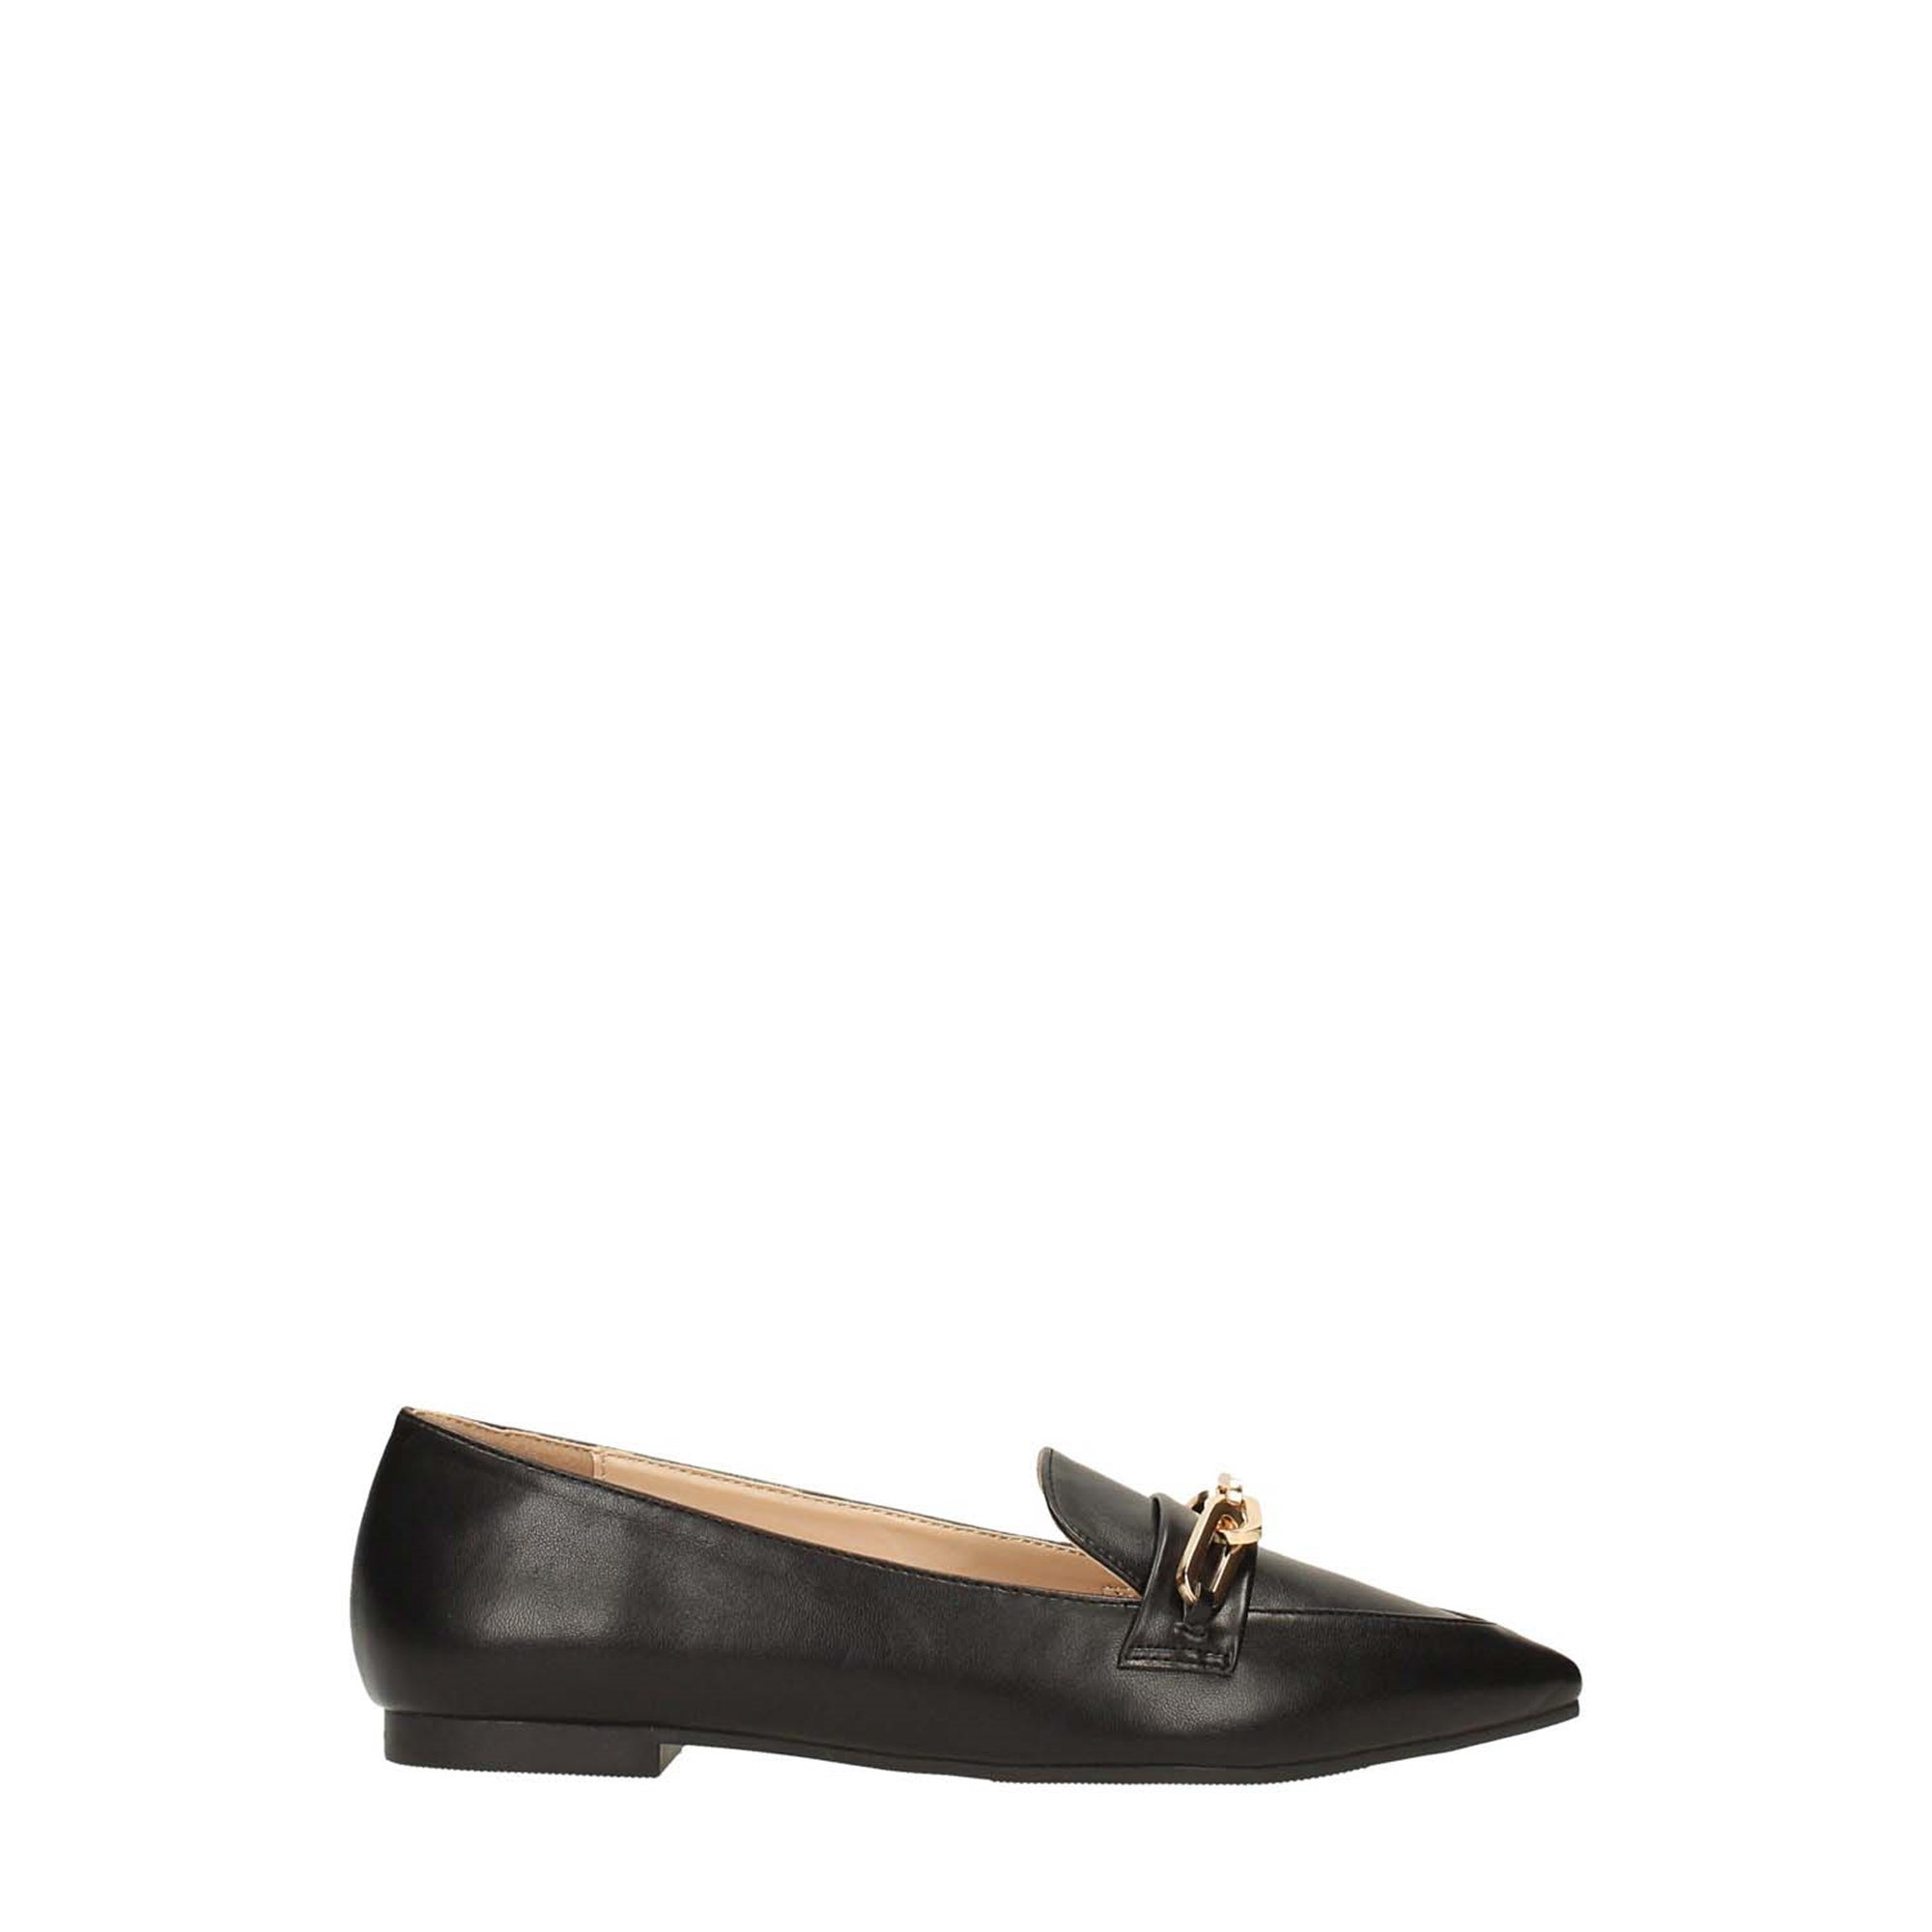 Tata Italia Shoes Woman Mocassini 9141A-168-J